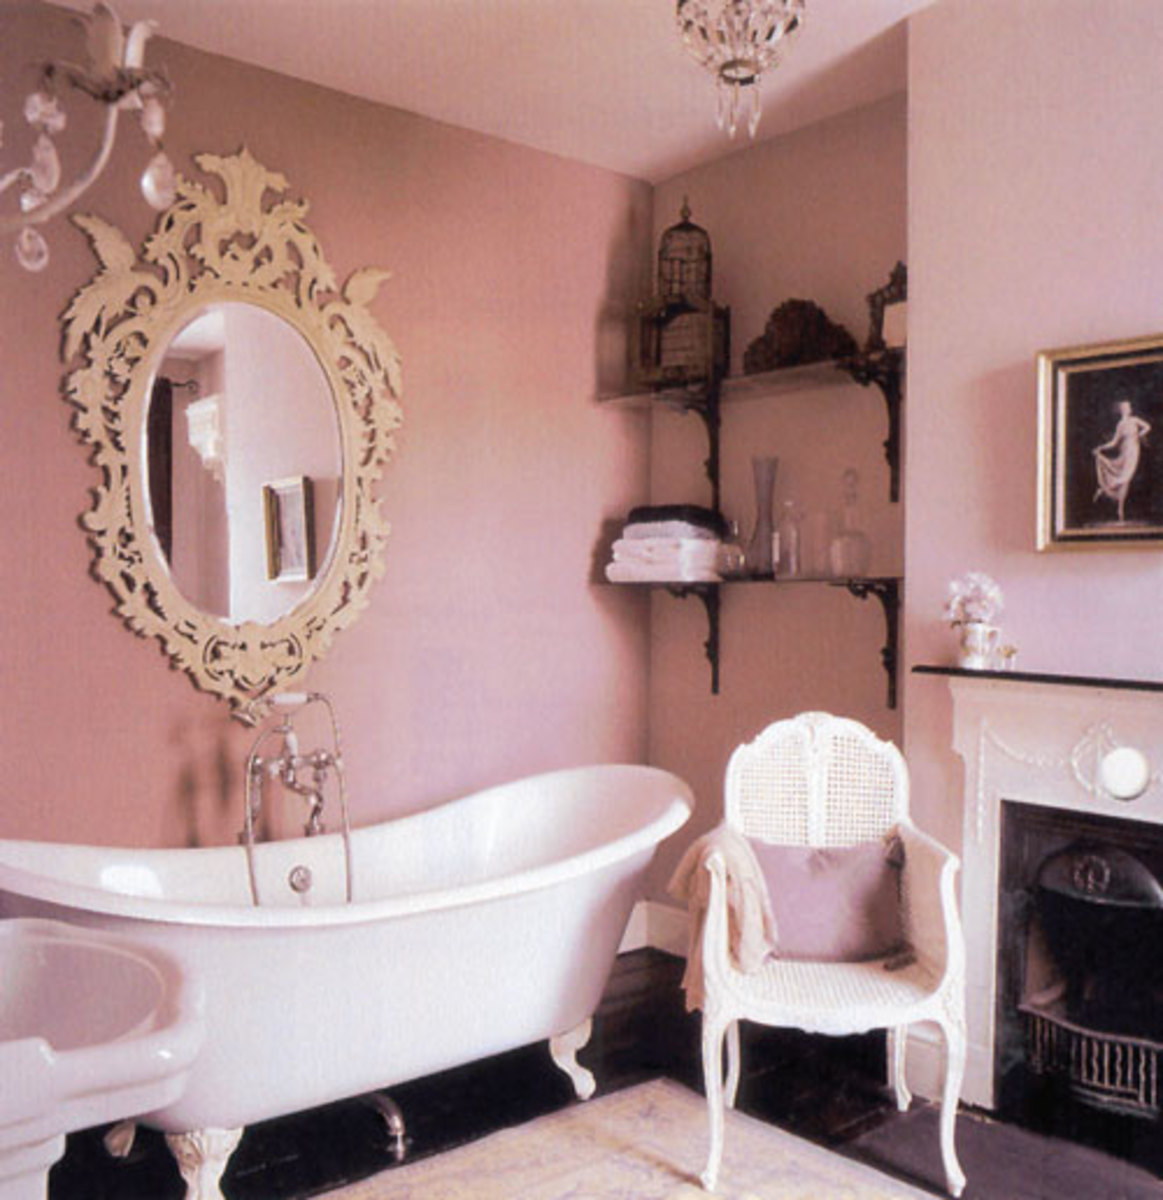 claw foot white tub in pink bathroom